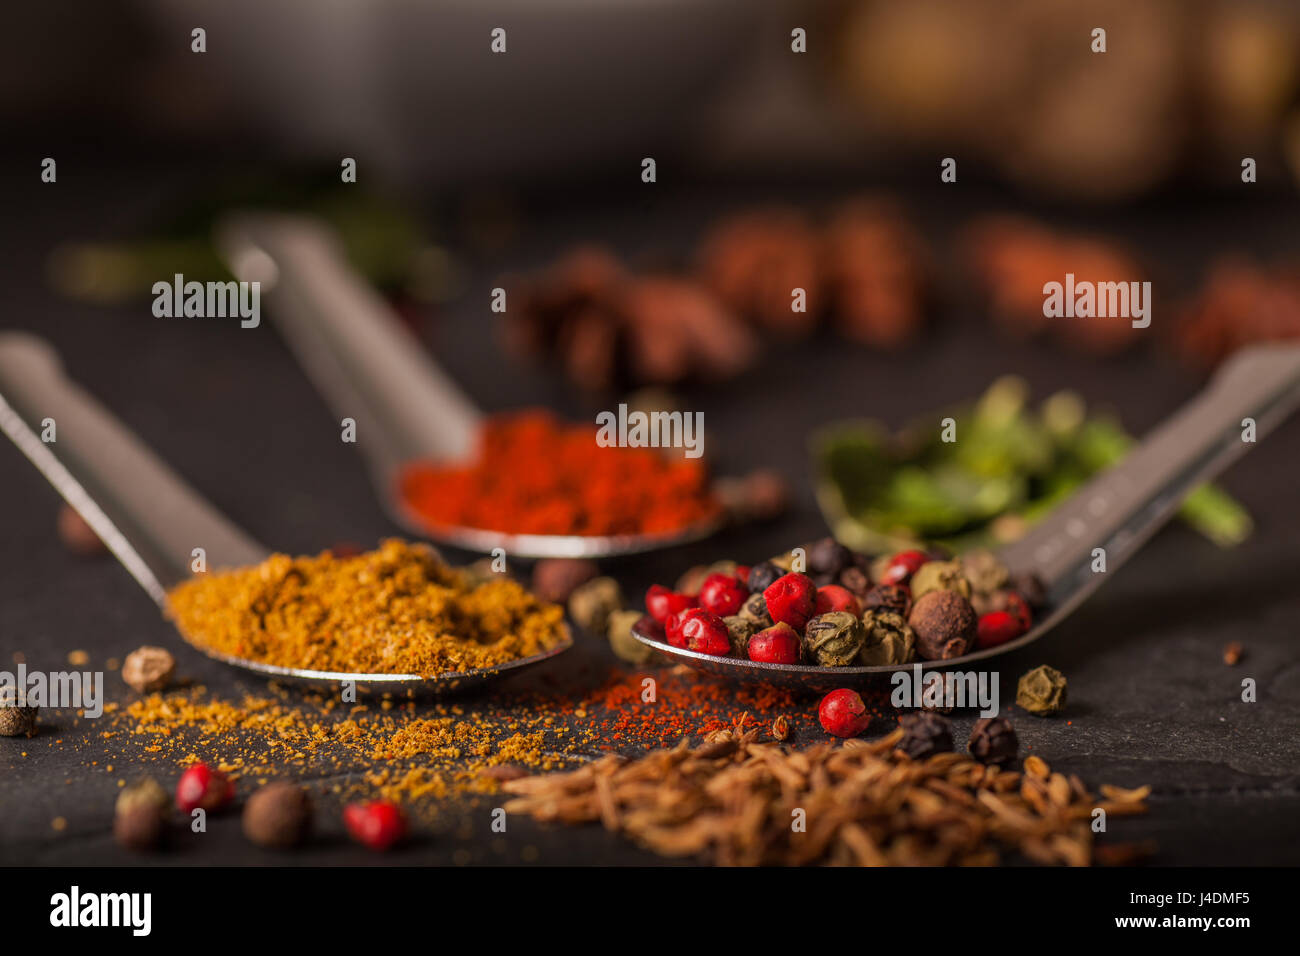 Close up of Spice sur plan de sélection en ardoise grise Photo Stock